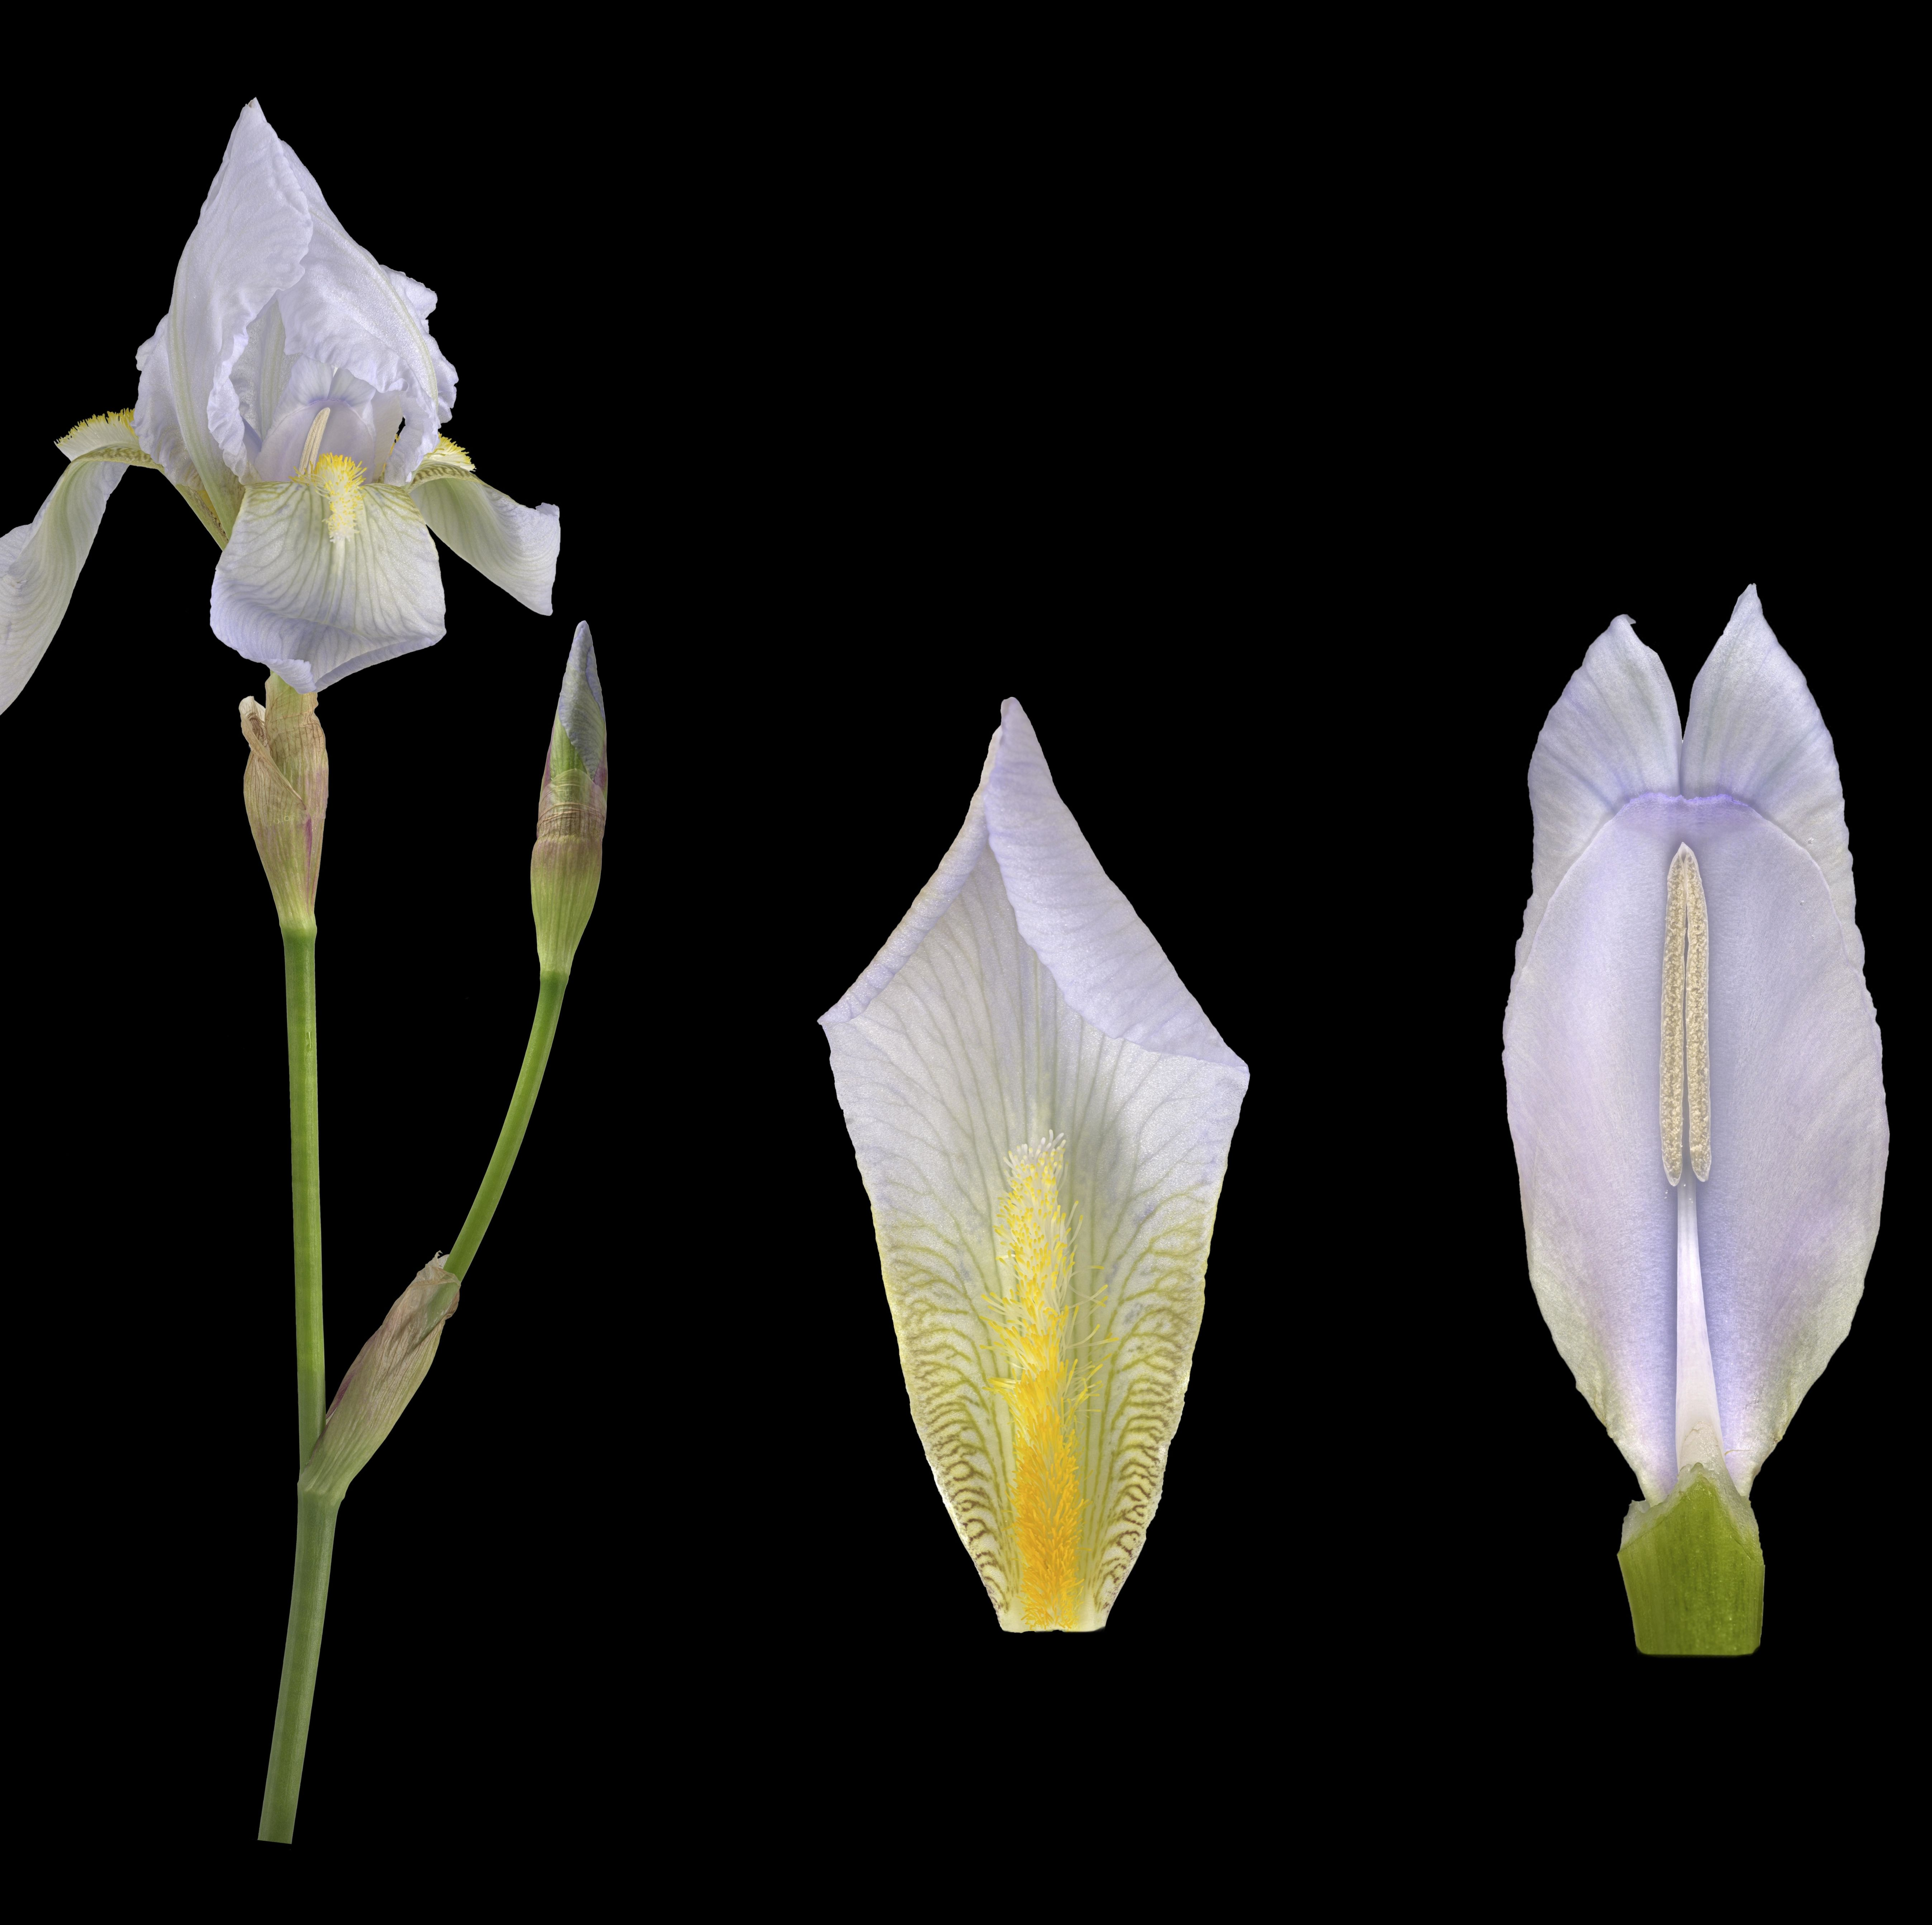 How the Humble Iris Root Became One of the Most Prized—and Pricey—Fragrance Ingredients on the Planet